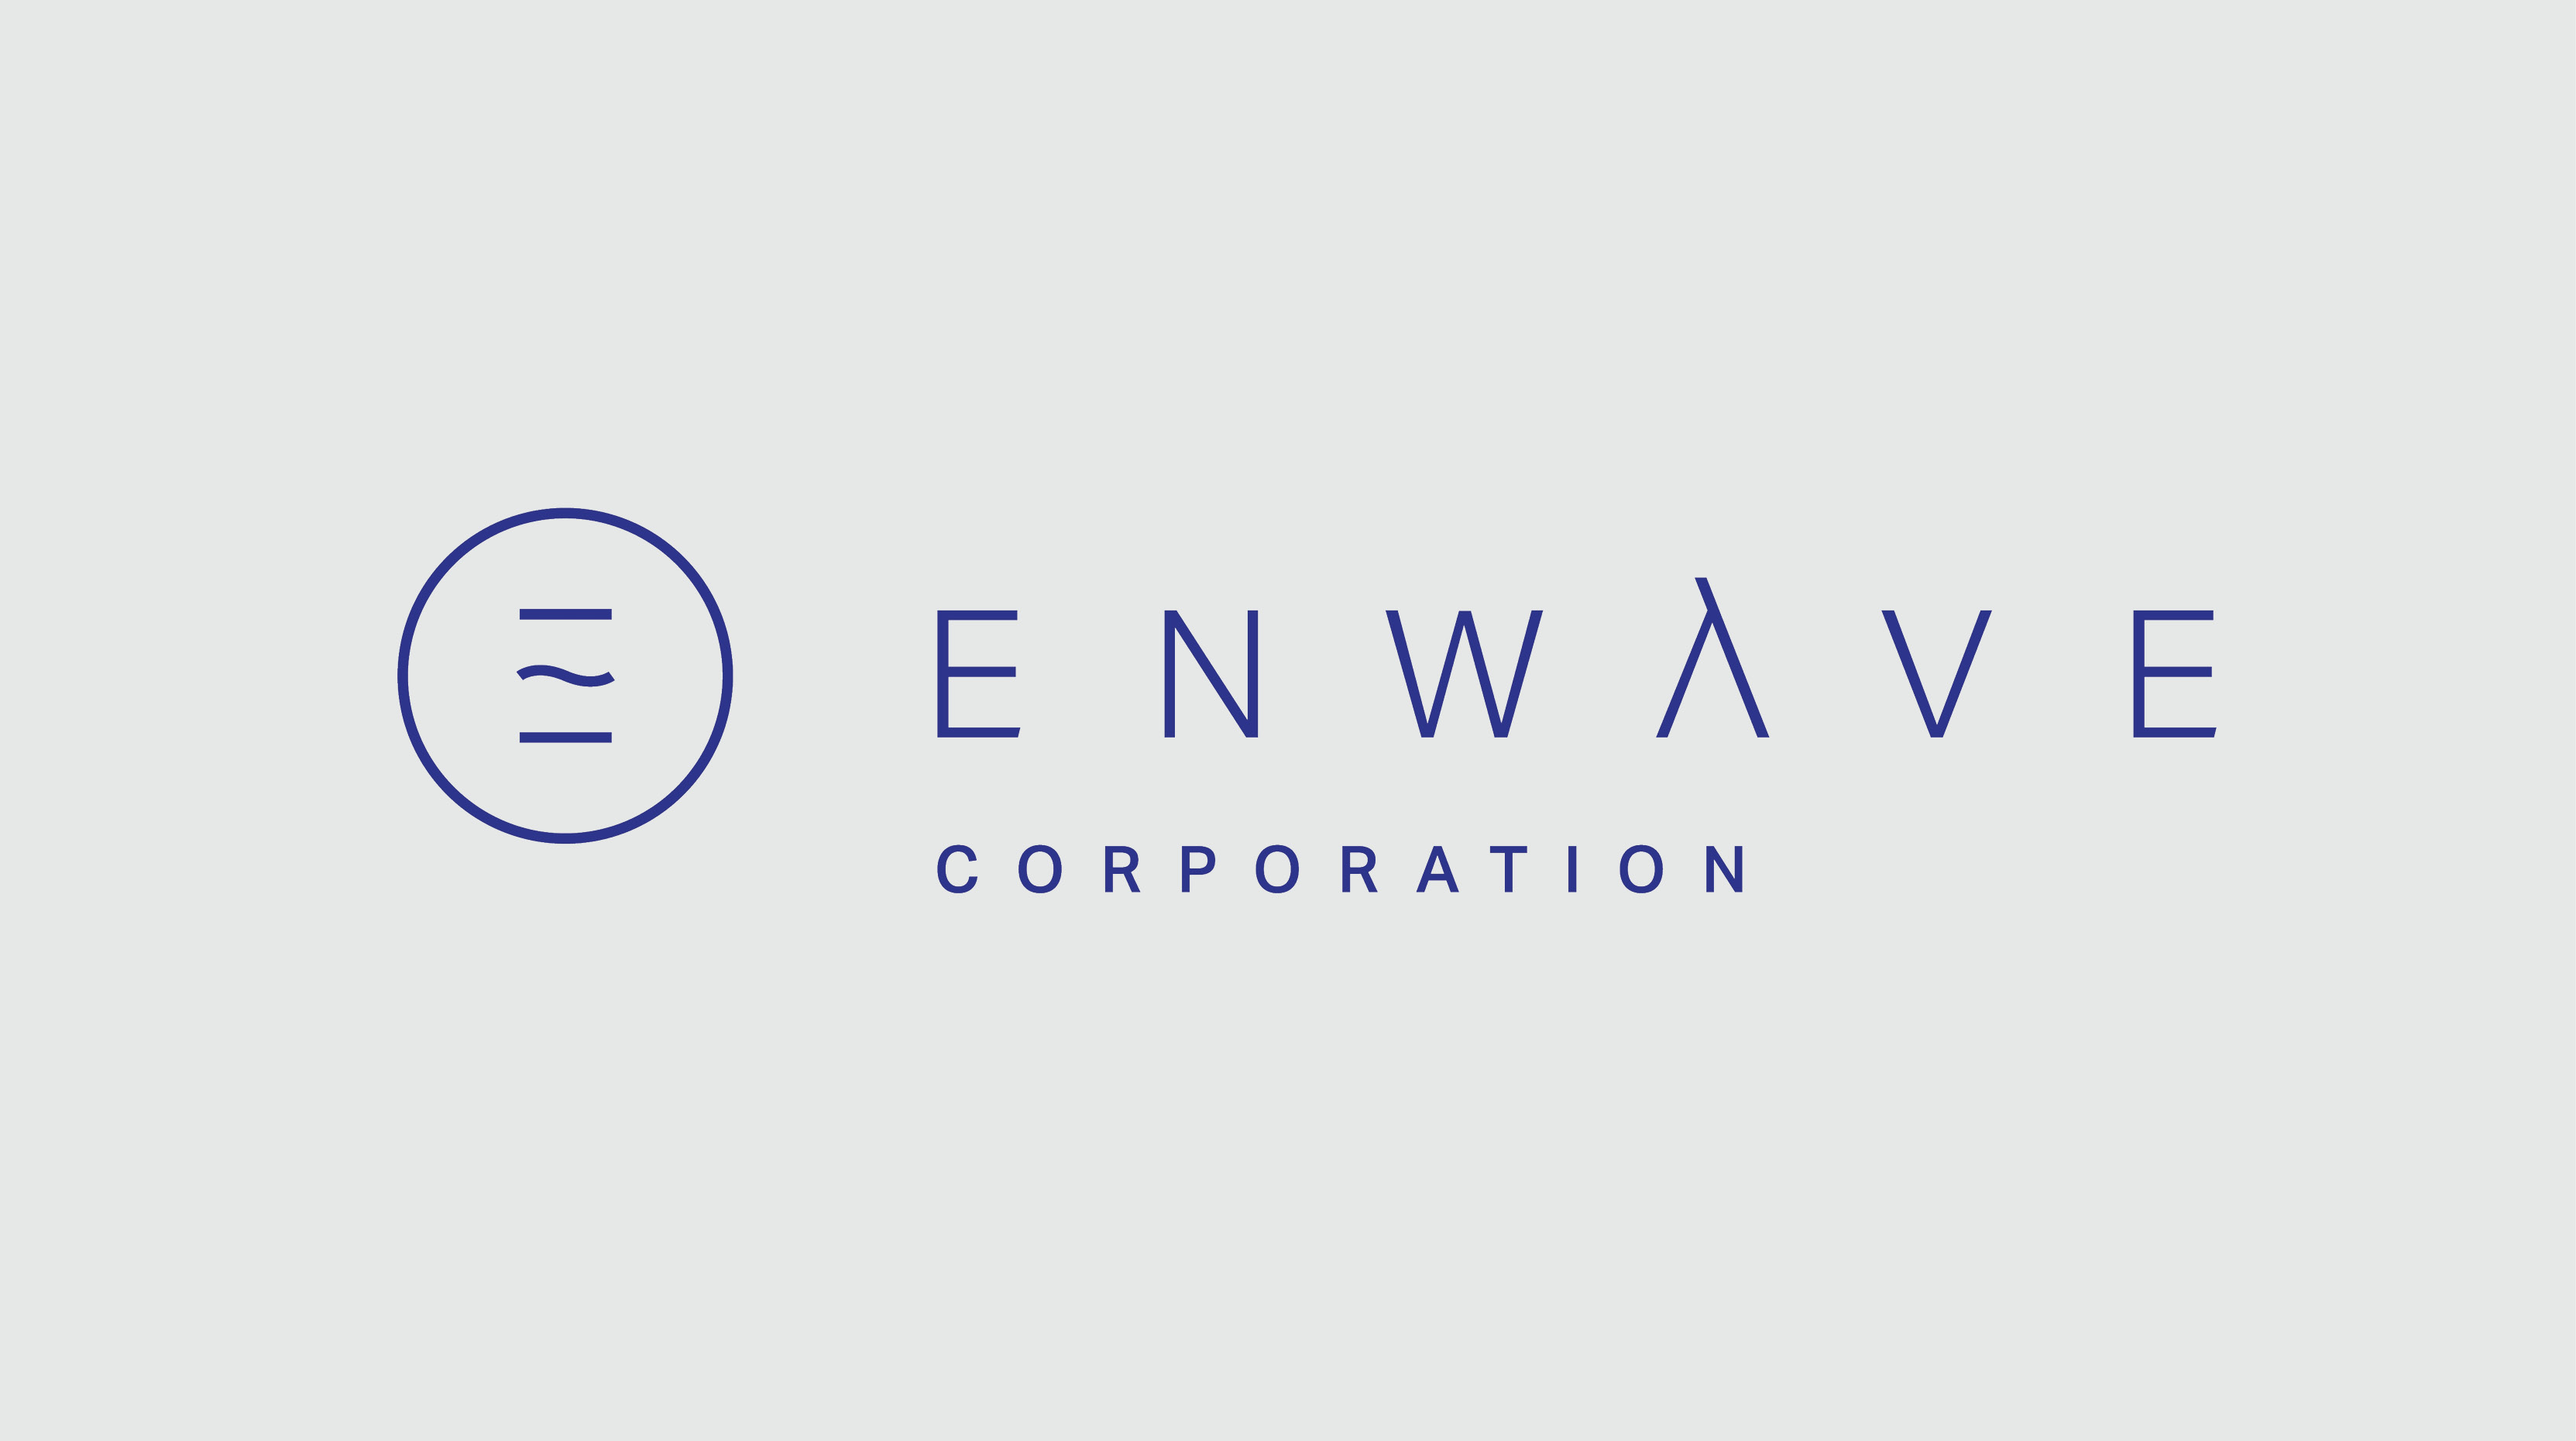 EnWave Corporation Refining Development of a Medical Device to Relieve COVID-19 Symptoms